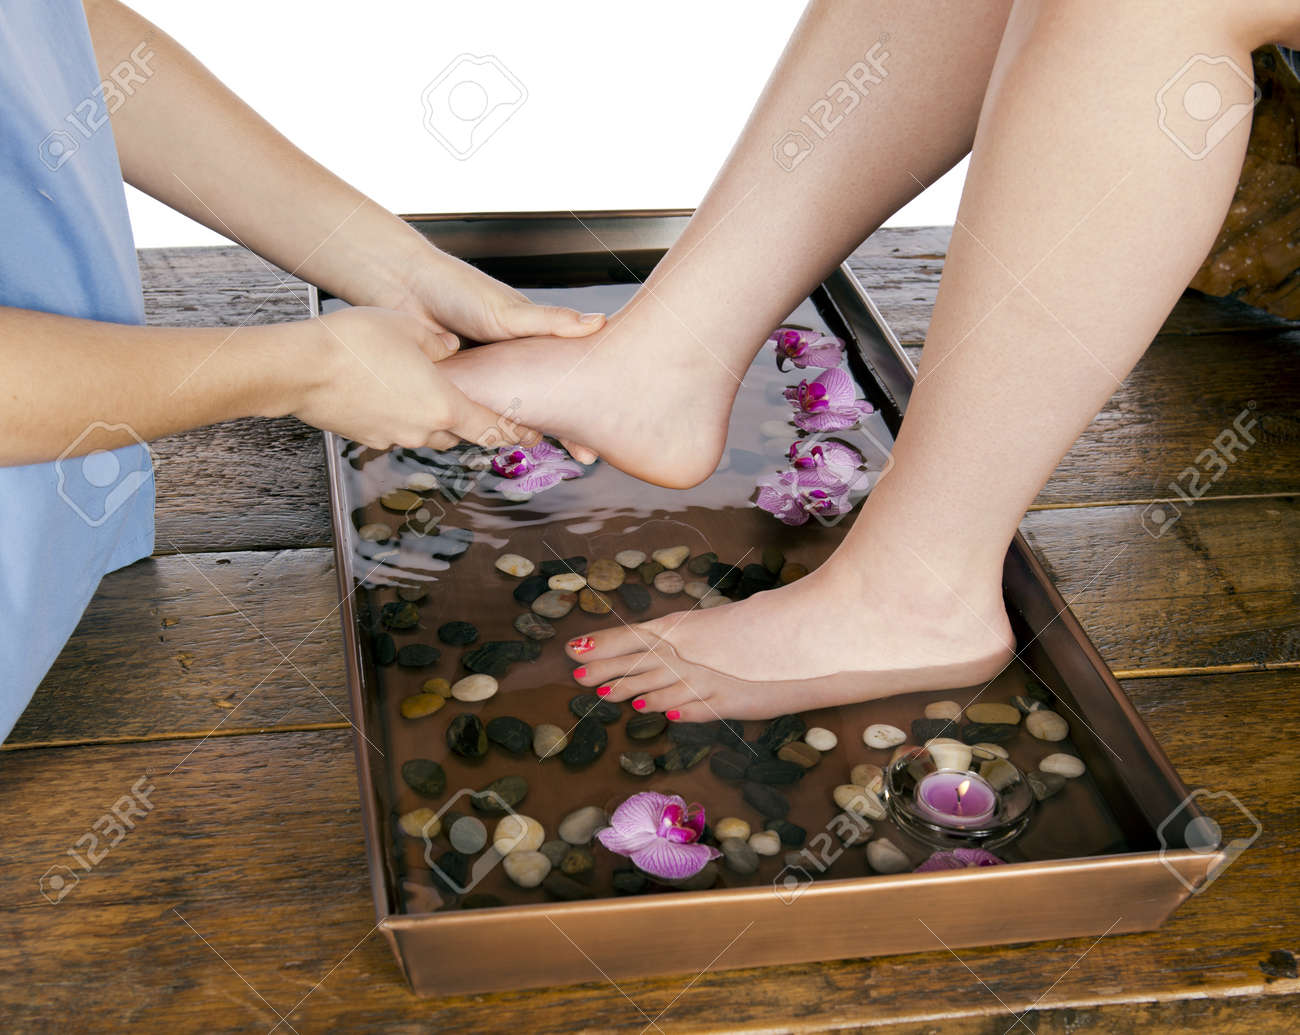 Spa therapy young woman get a massage from masseuse while at a day spa after soaking feet in a floral warm hydrating water bath  In studio on white background and wooden floor Stock Photo - 19058294